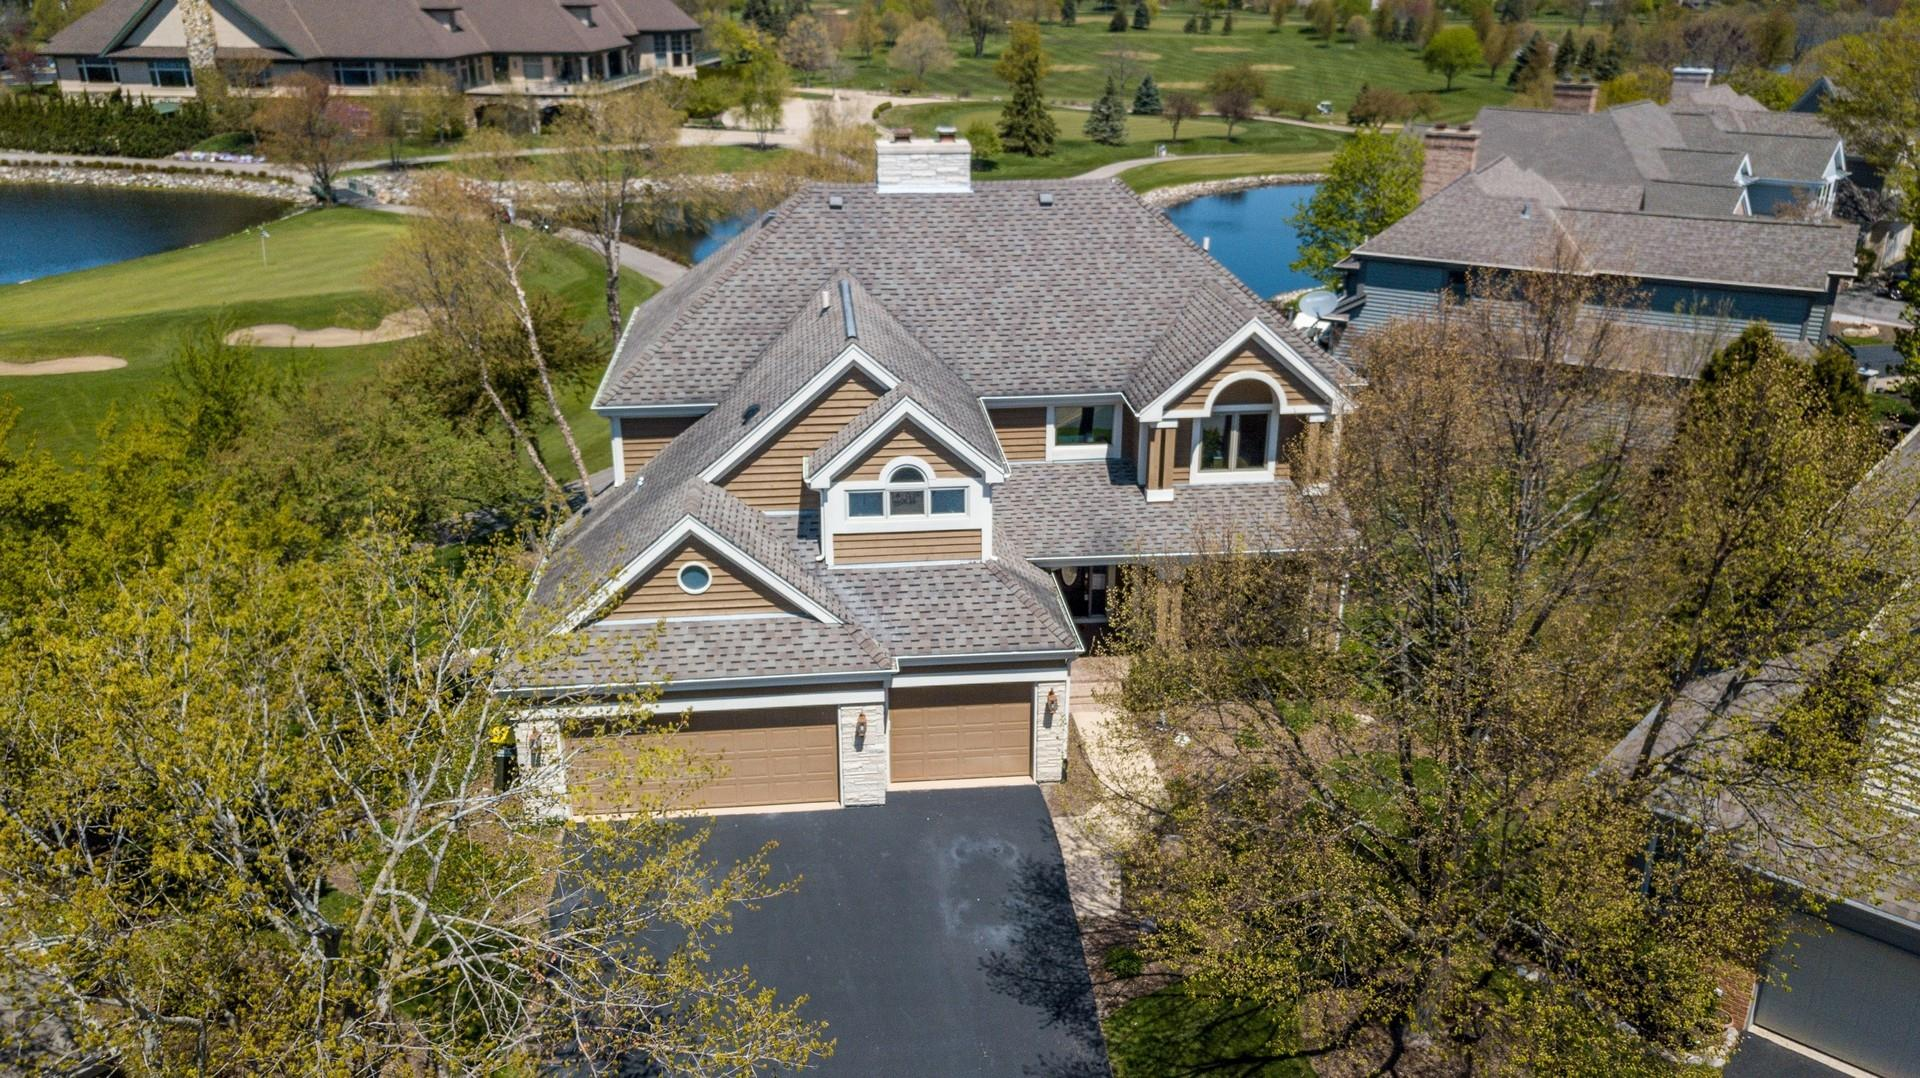 7 Pebble Beach Court, Lake in the Hills, IL 60156 - #: 10625345